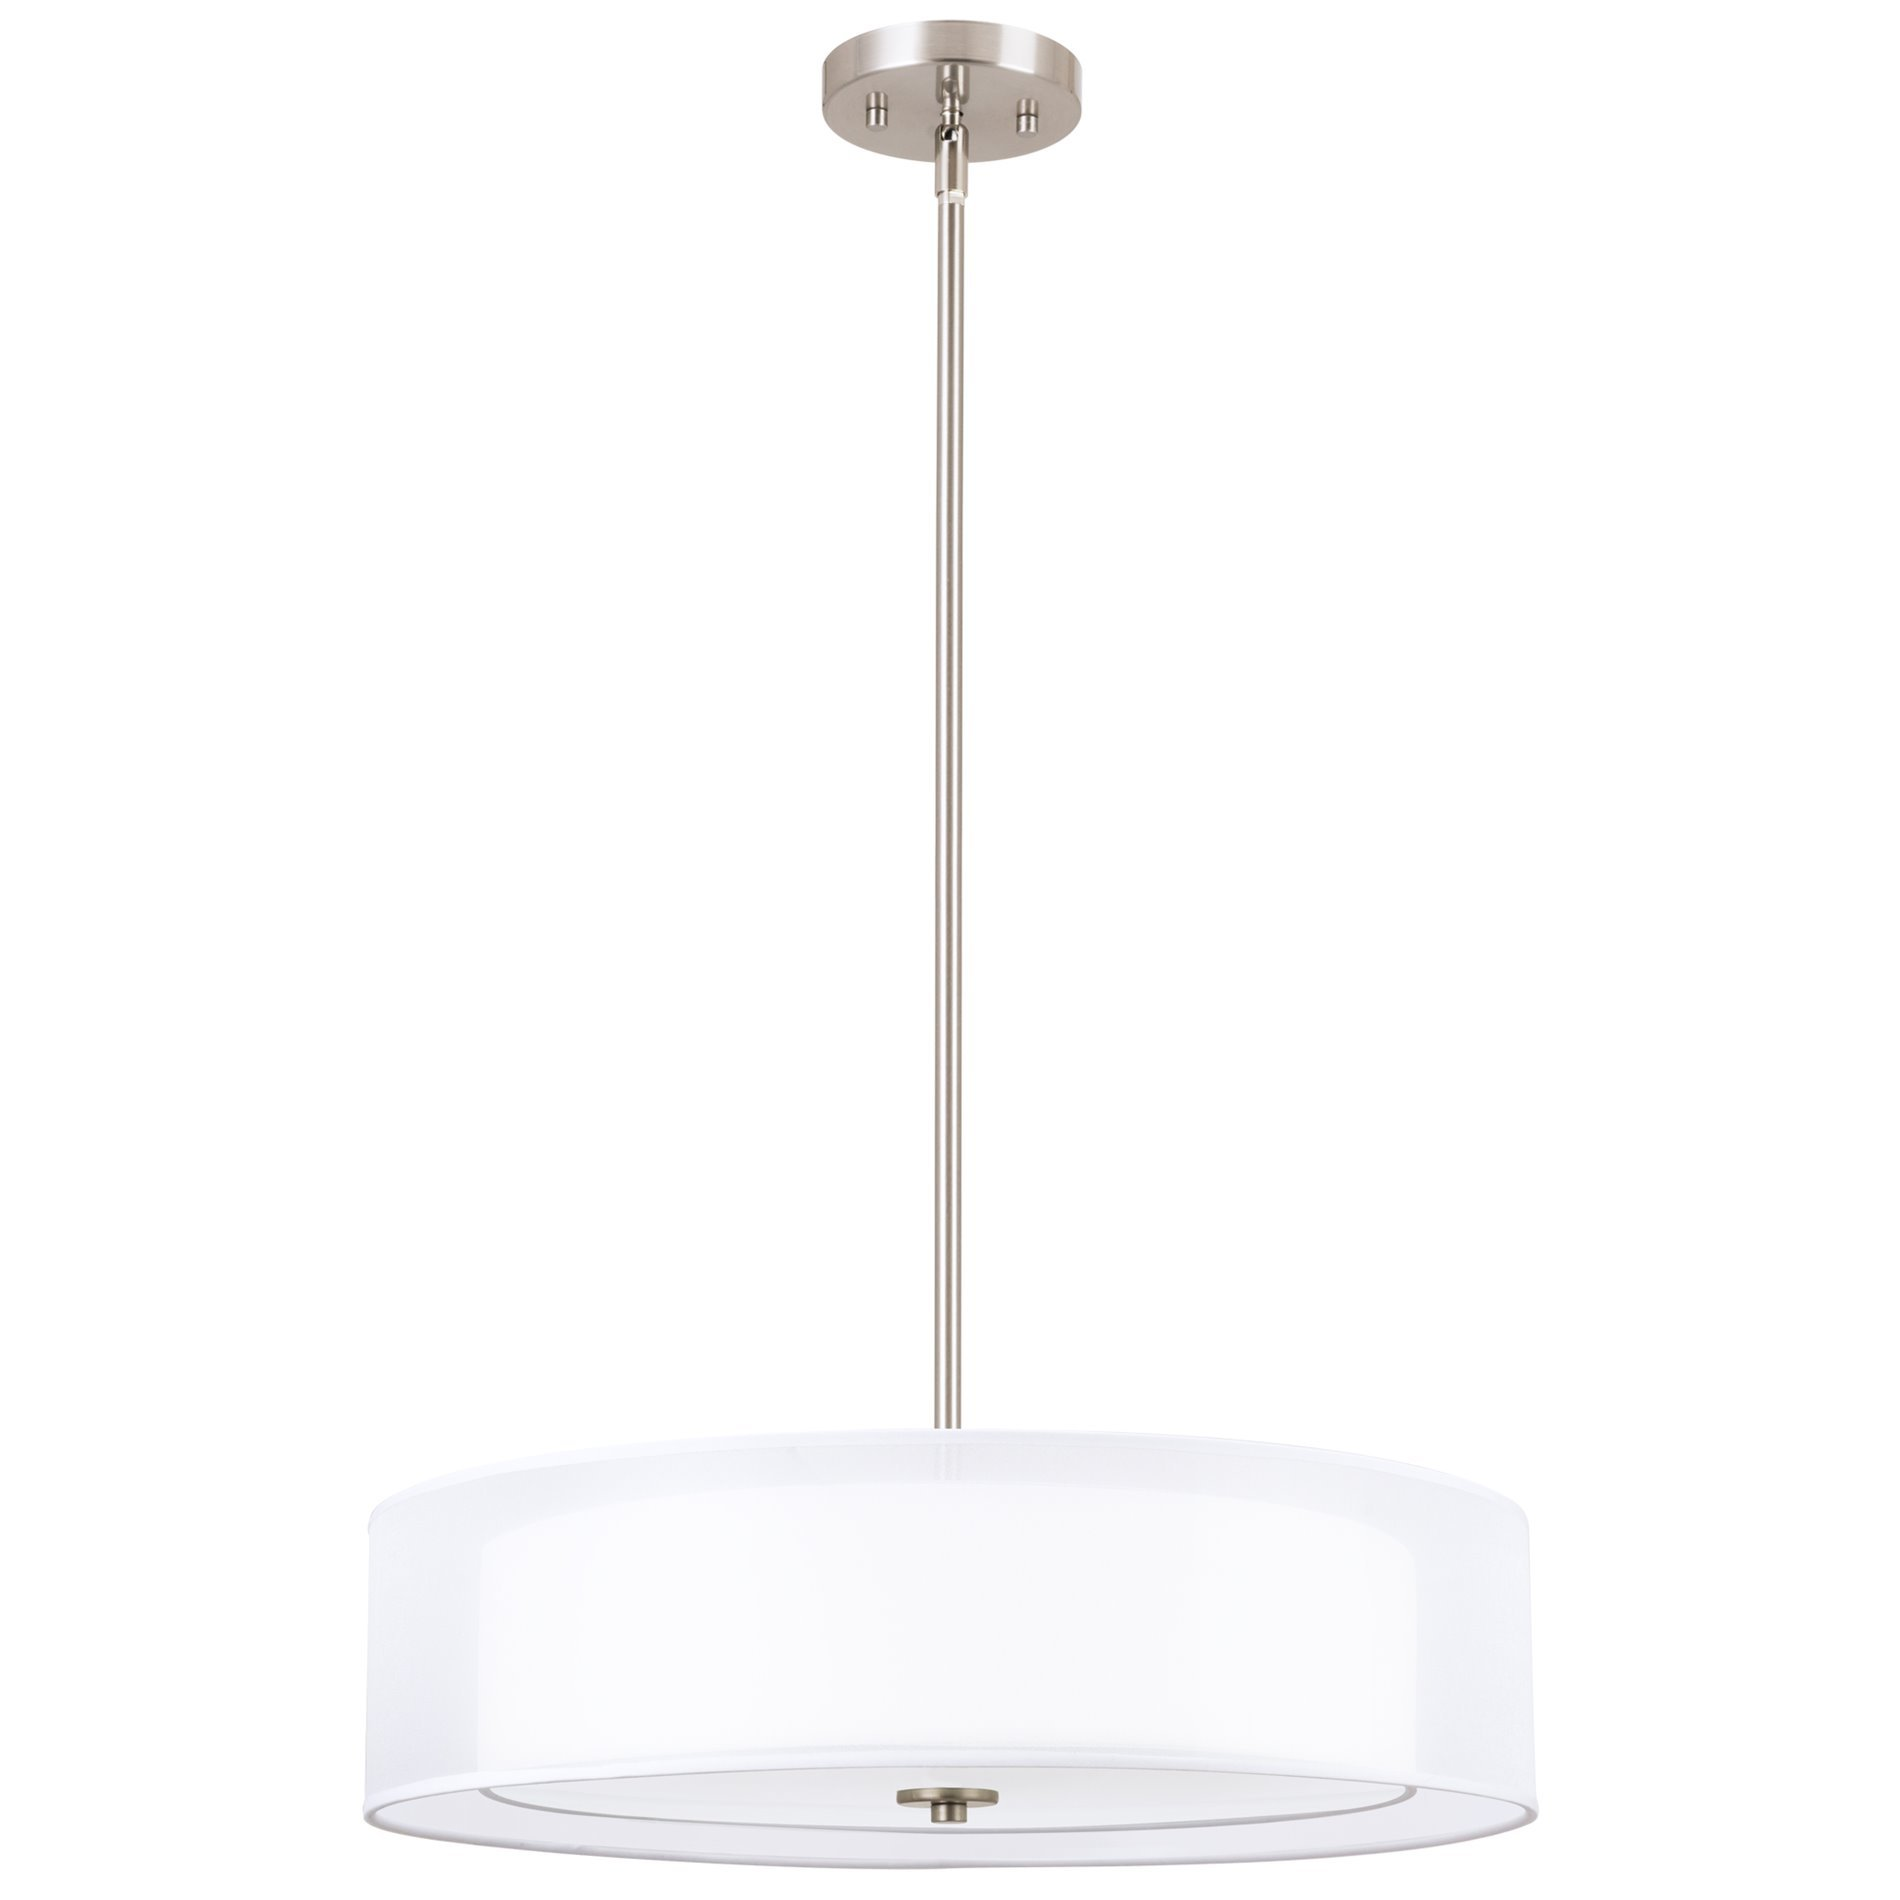 Kira Home Lindos 20'' Modern 3-Light Double Drum Chandelier + Glass Diffuser, Stem-Hung with Adjustable Height, Brushed Nickel Finish by Kira Home